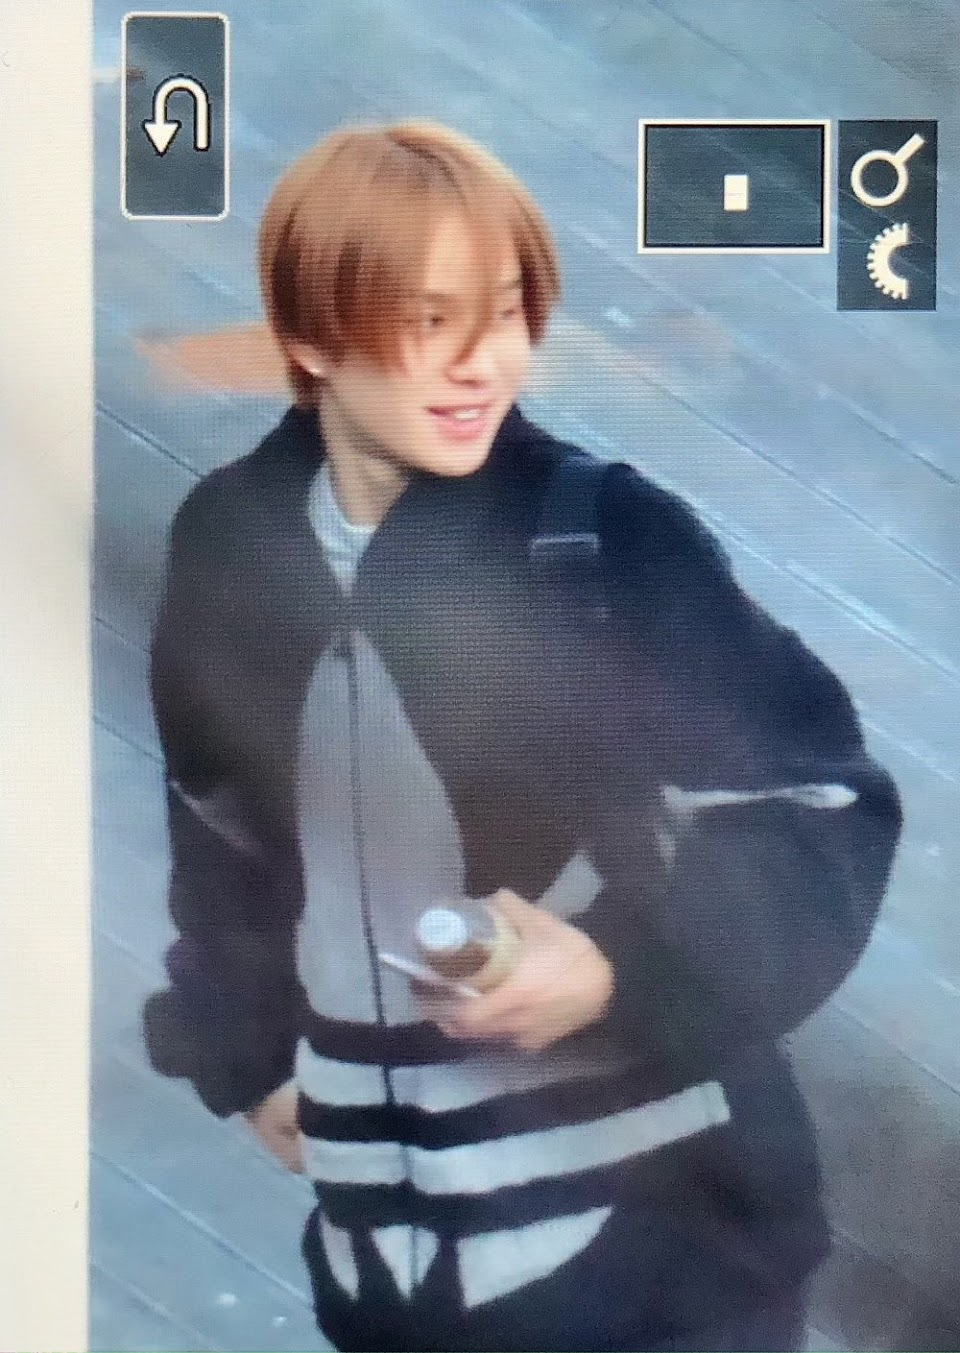 nct jungwoo